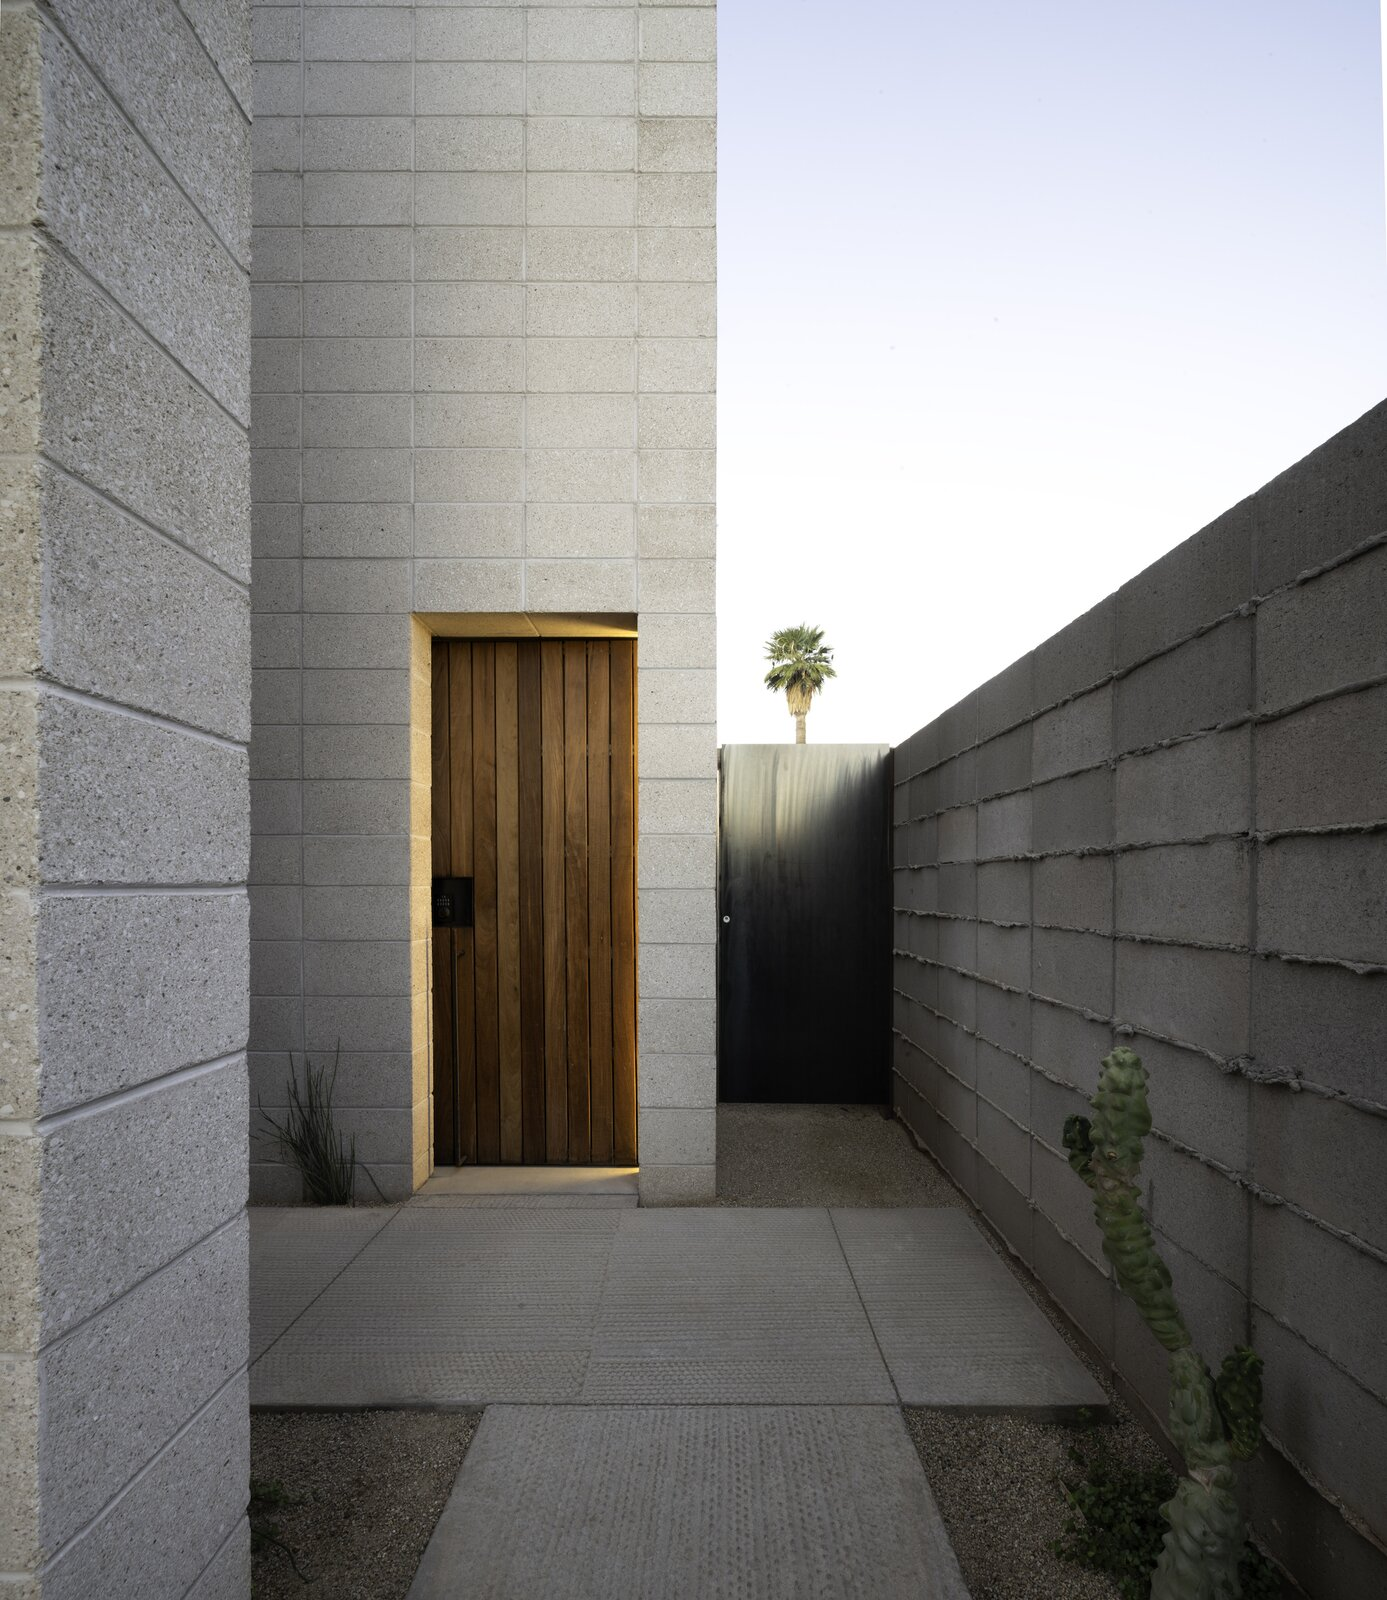 Entrance to White Stone Flats by Benjamin Hall Design.